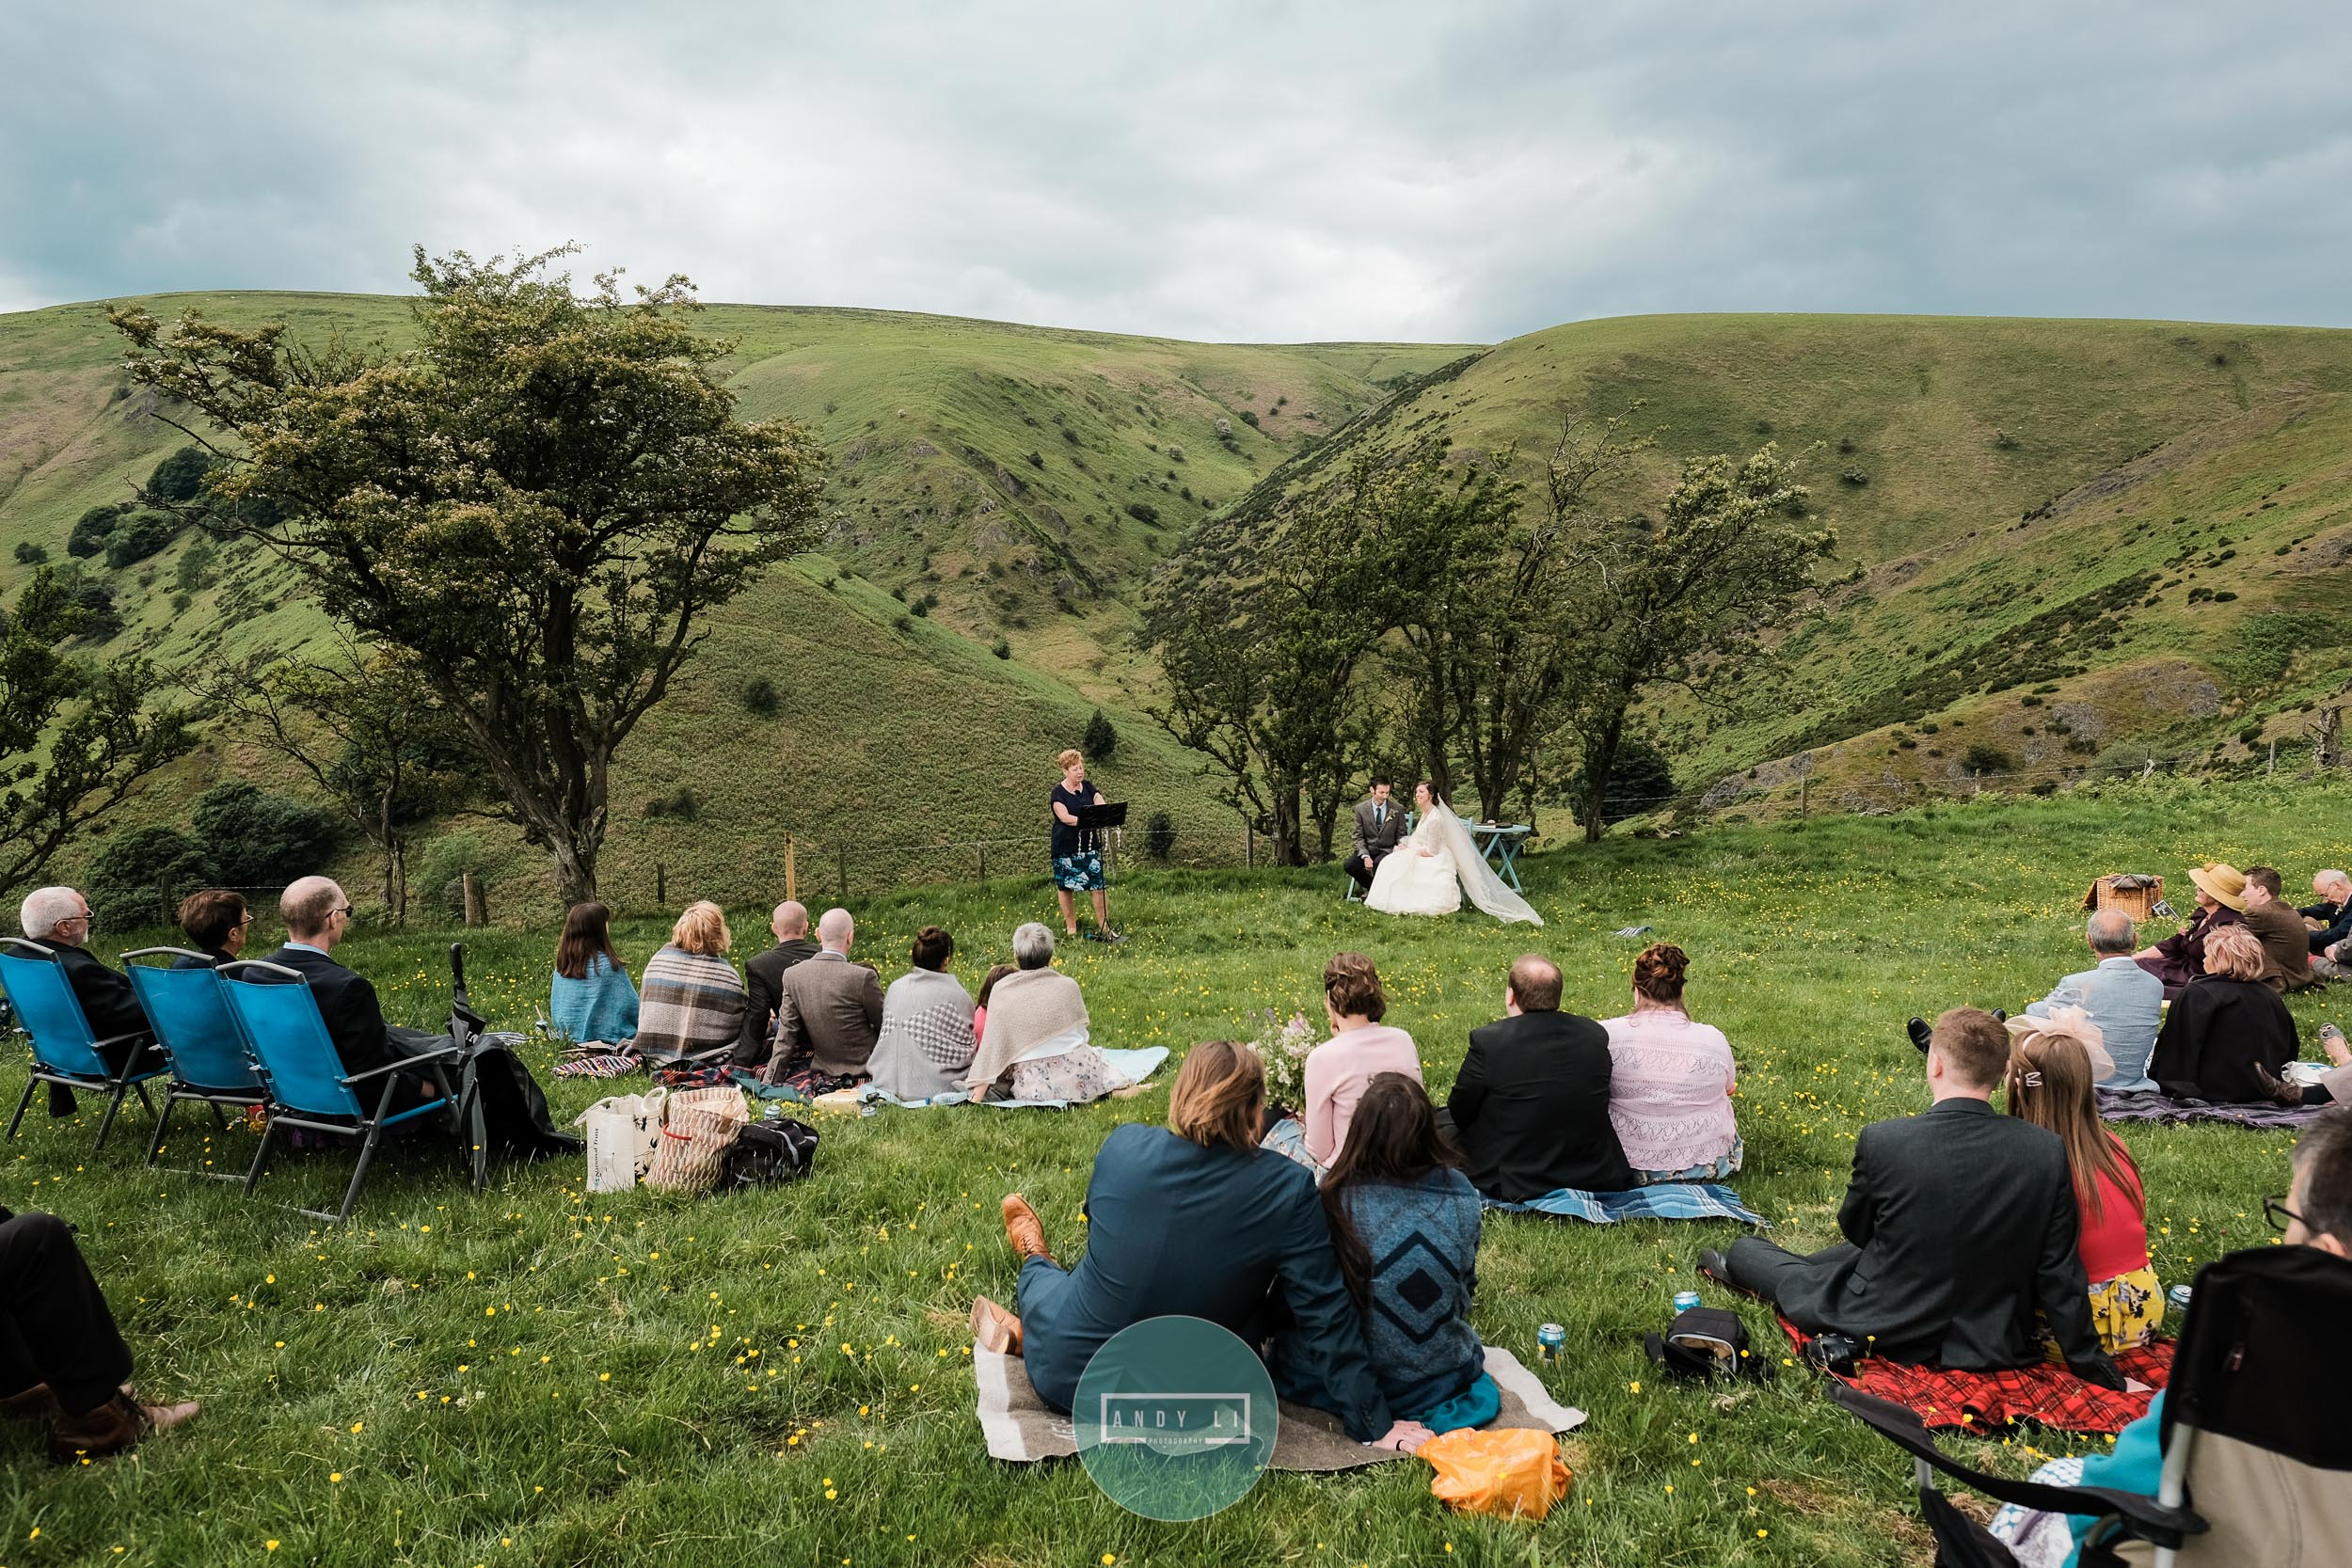 Shropshire Hills Humanist Outdoors Wedding Photography-006-XPRO4810.jpg